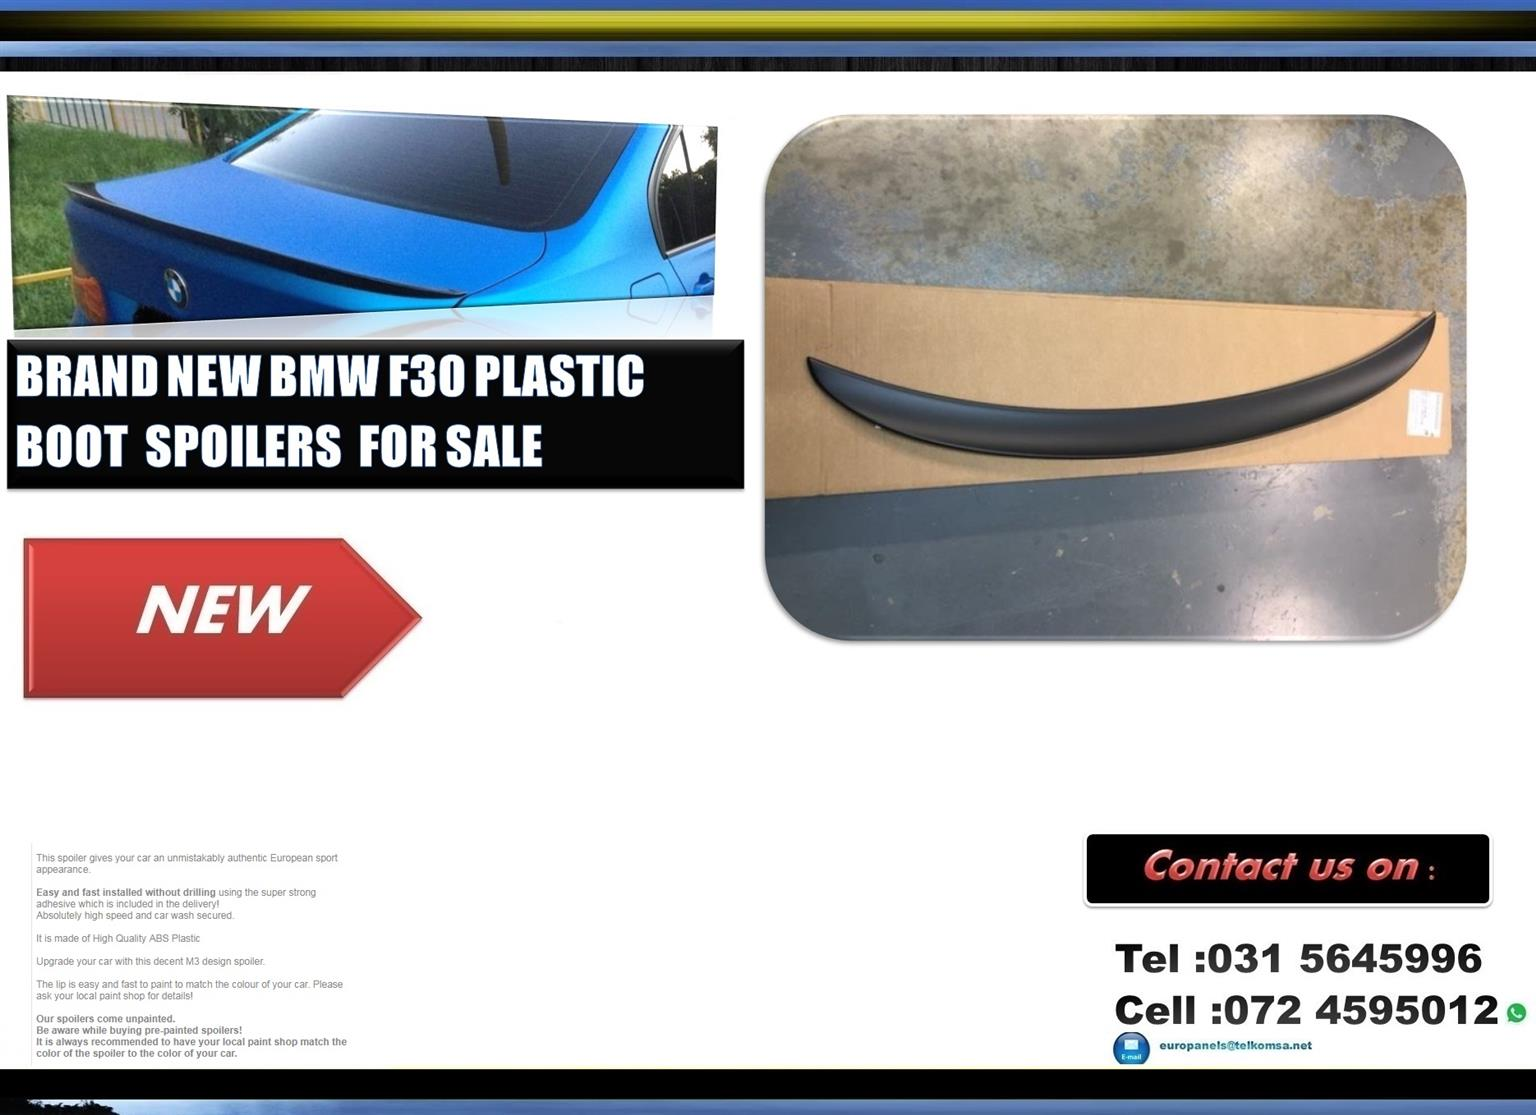 BMW F30 3 Series Brand New Plastic M-Performance Style Boot Spoiler for sale Price :R850